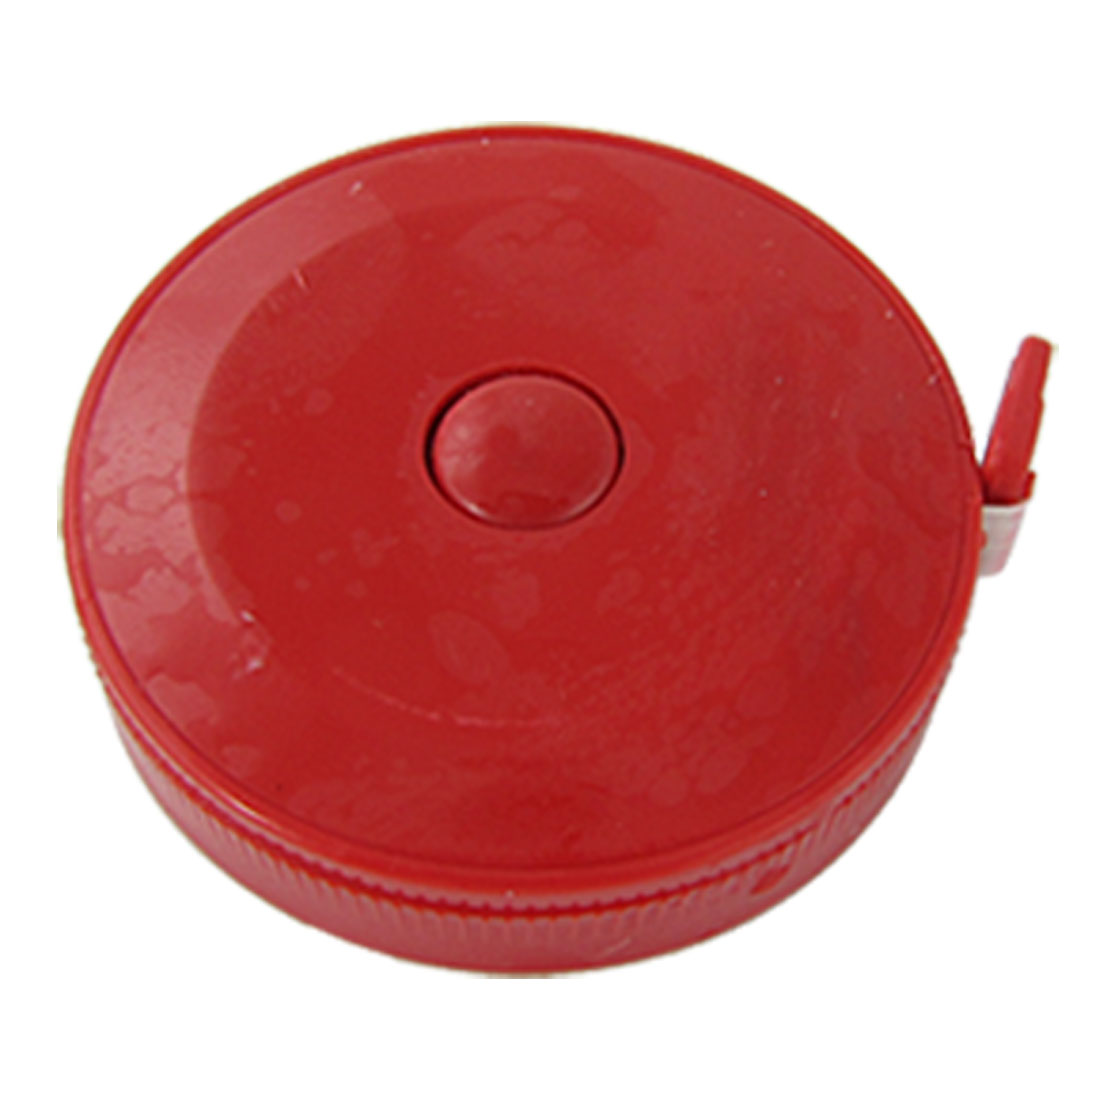 Soft Plastic 150cm Length Measuring Tape w Red Shell Case